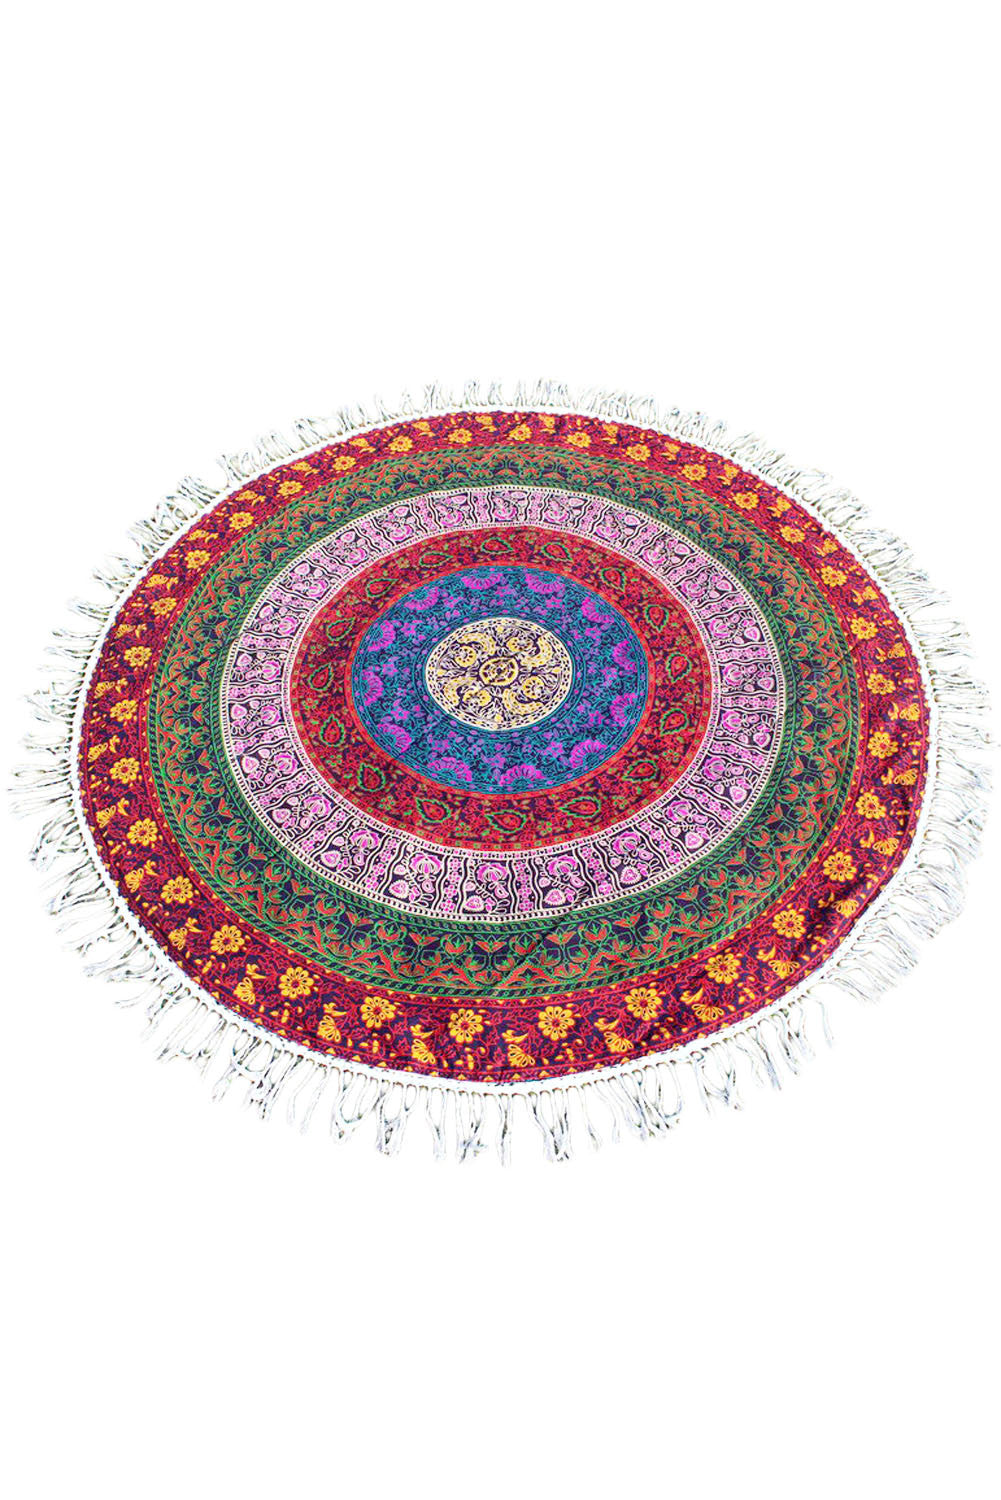 Aluna Cotton Mandala Round Decoration Tapestry, Yoga/Beach Towel.